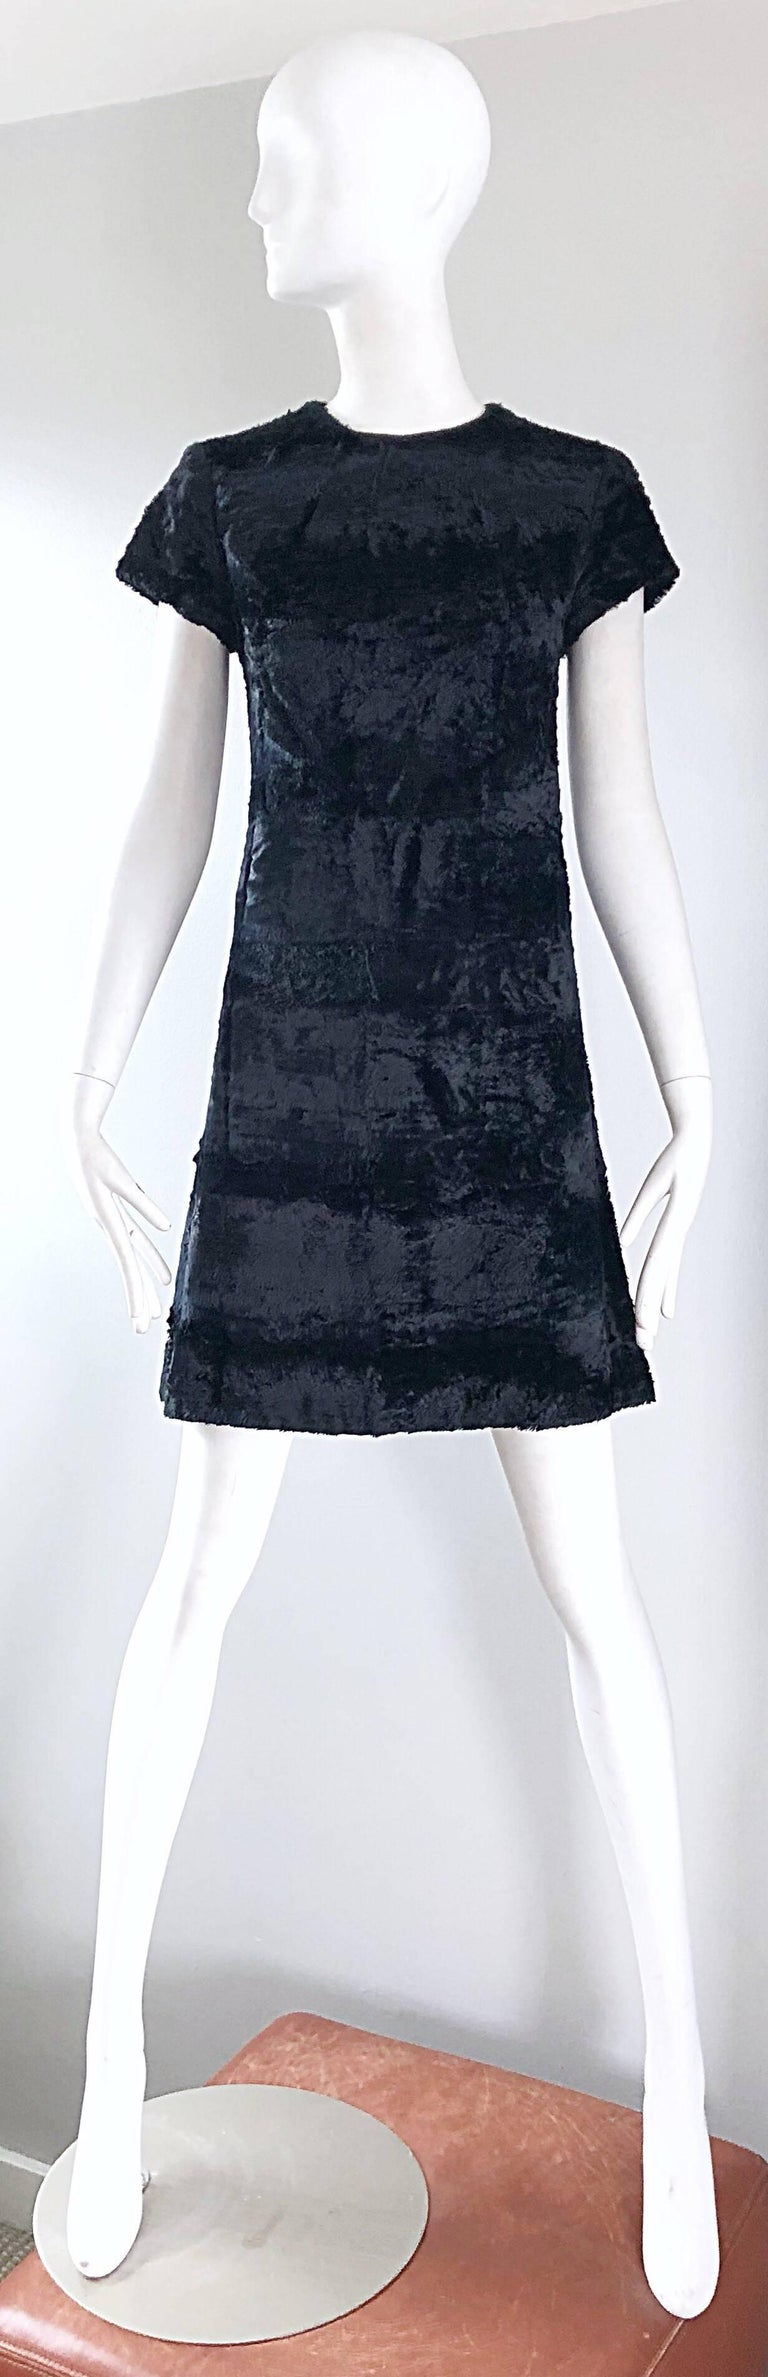 Chic 1960s SAKS FIFTH AVE. black faux fur mod A-Line / shift dress! This is not just your average little black dress, and I have never seen one like this before! Super soft faux fur fabric feels amazing against the skin. Fitted bodice with a